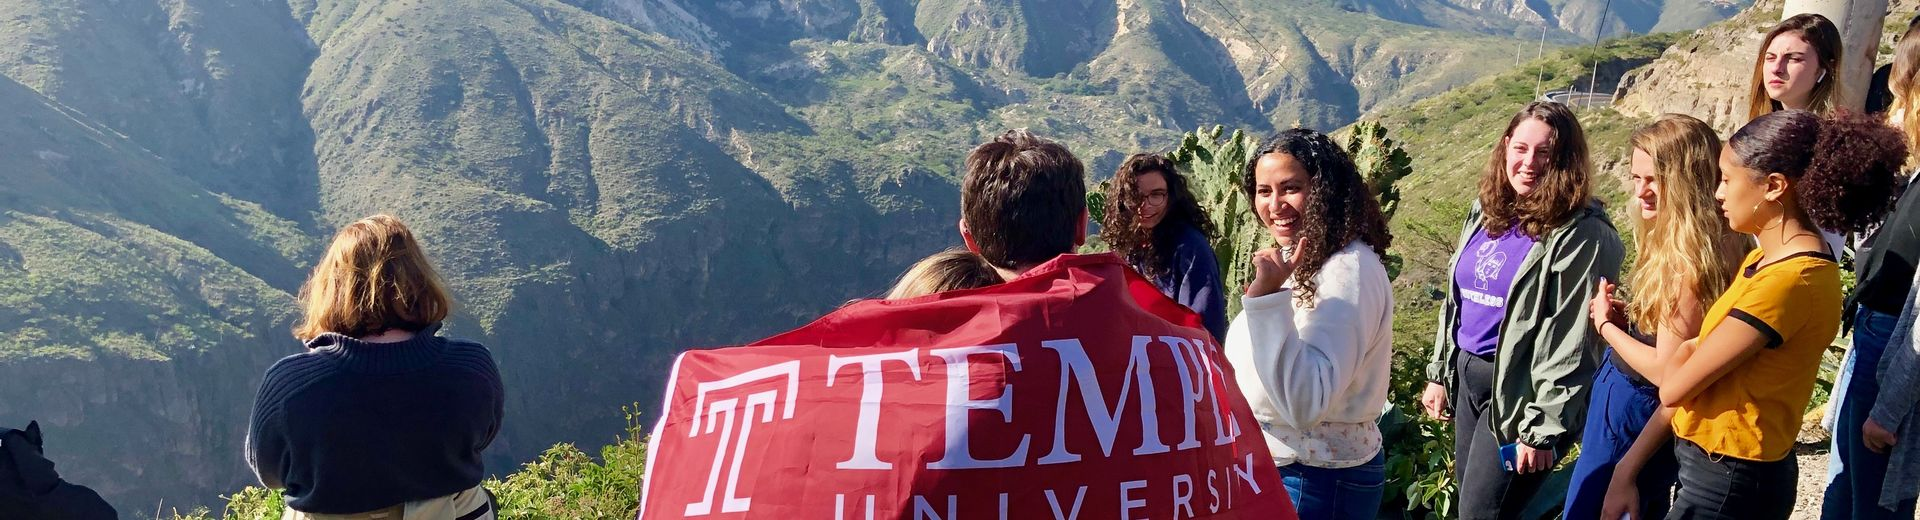 Students on top of a mountain carrying a cherry red Temple flag